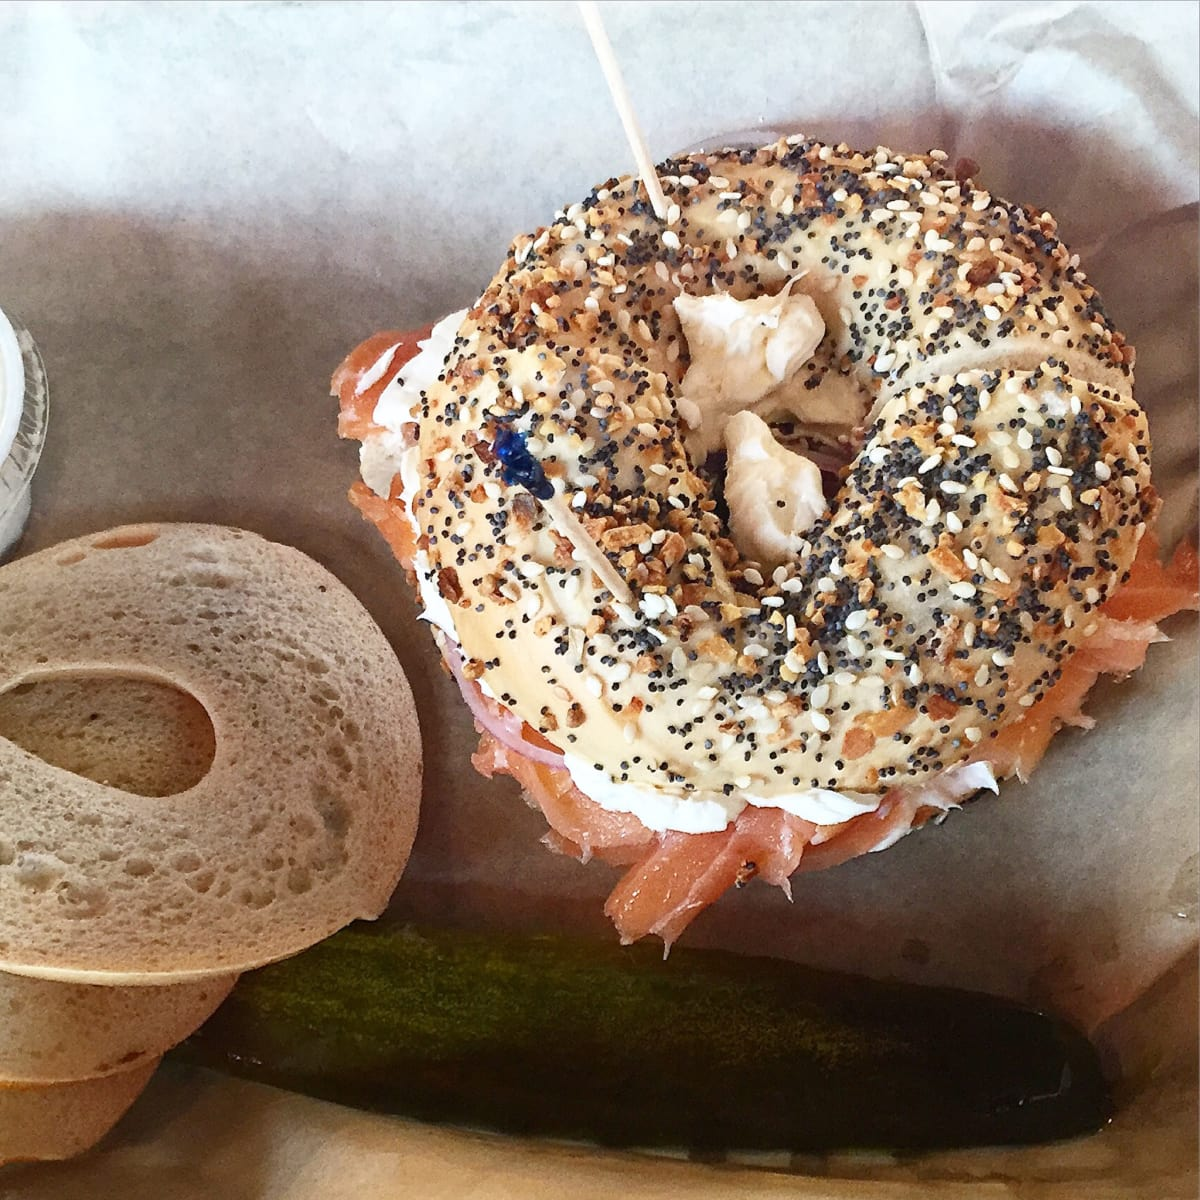 Toasted bagel and lox